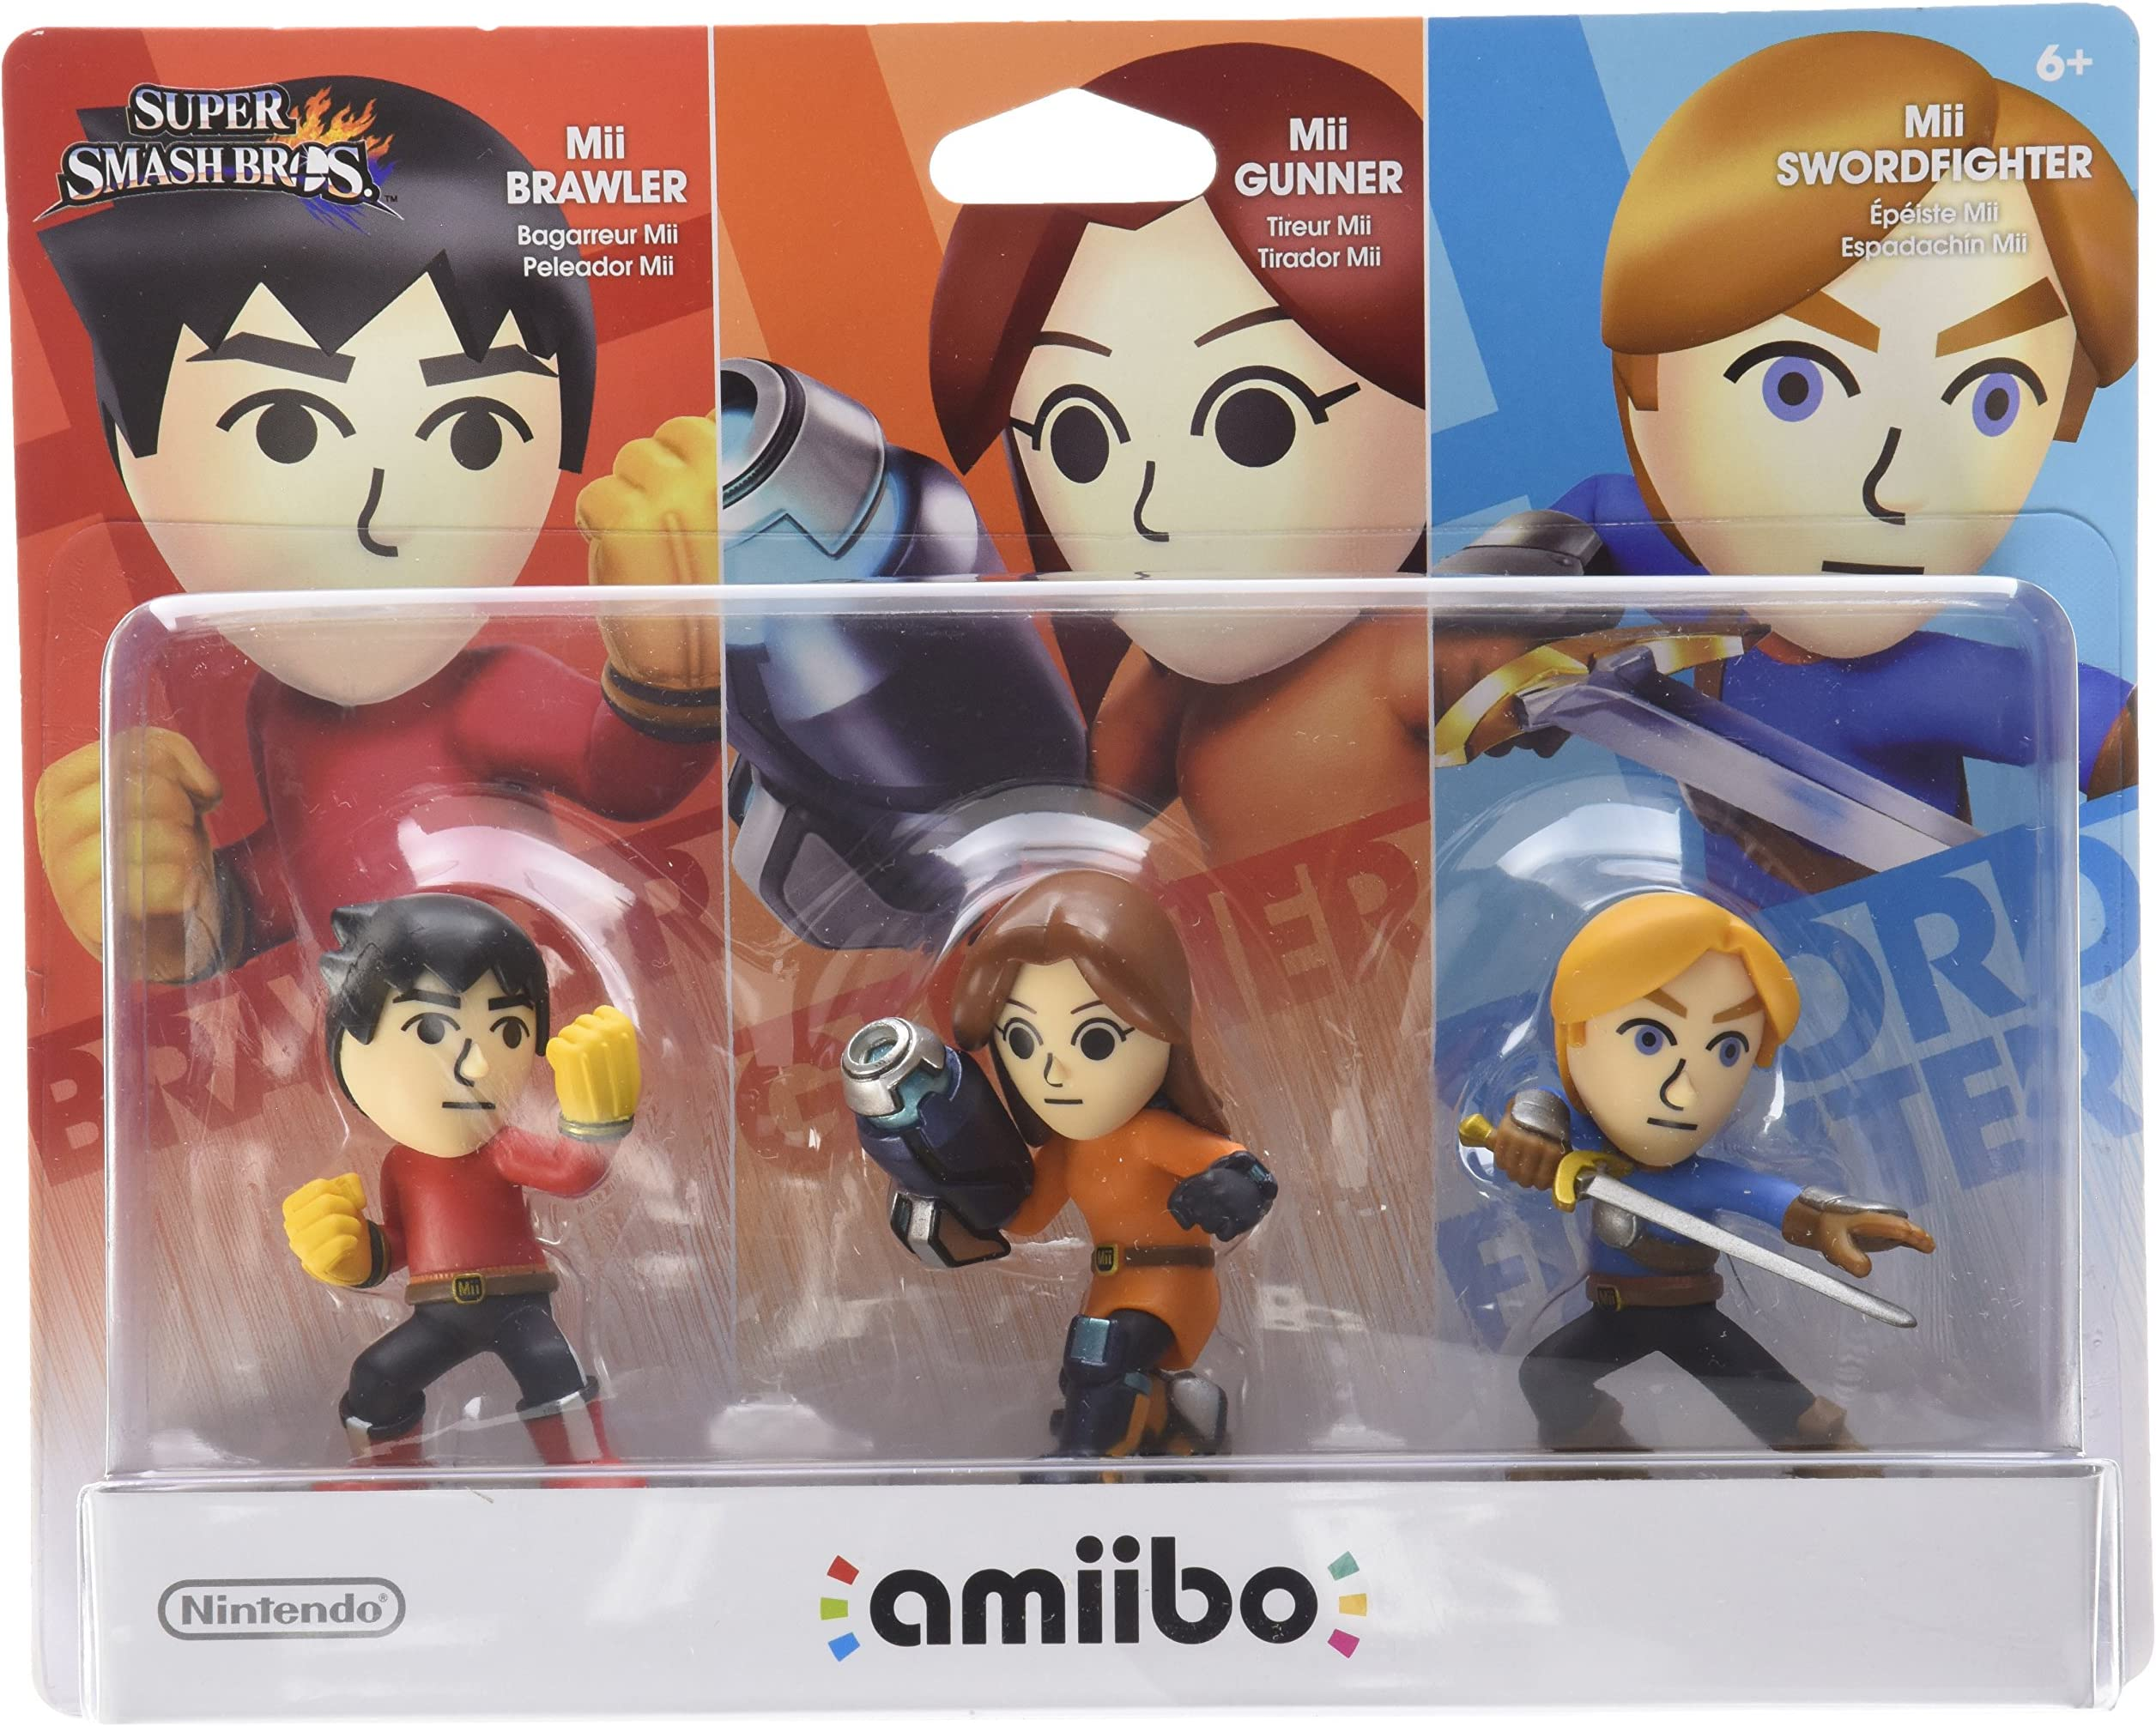 Amazon com: Mii 3-pack - Brawler, Gunner, Swordfighter